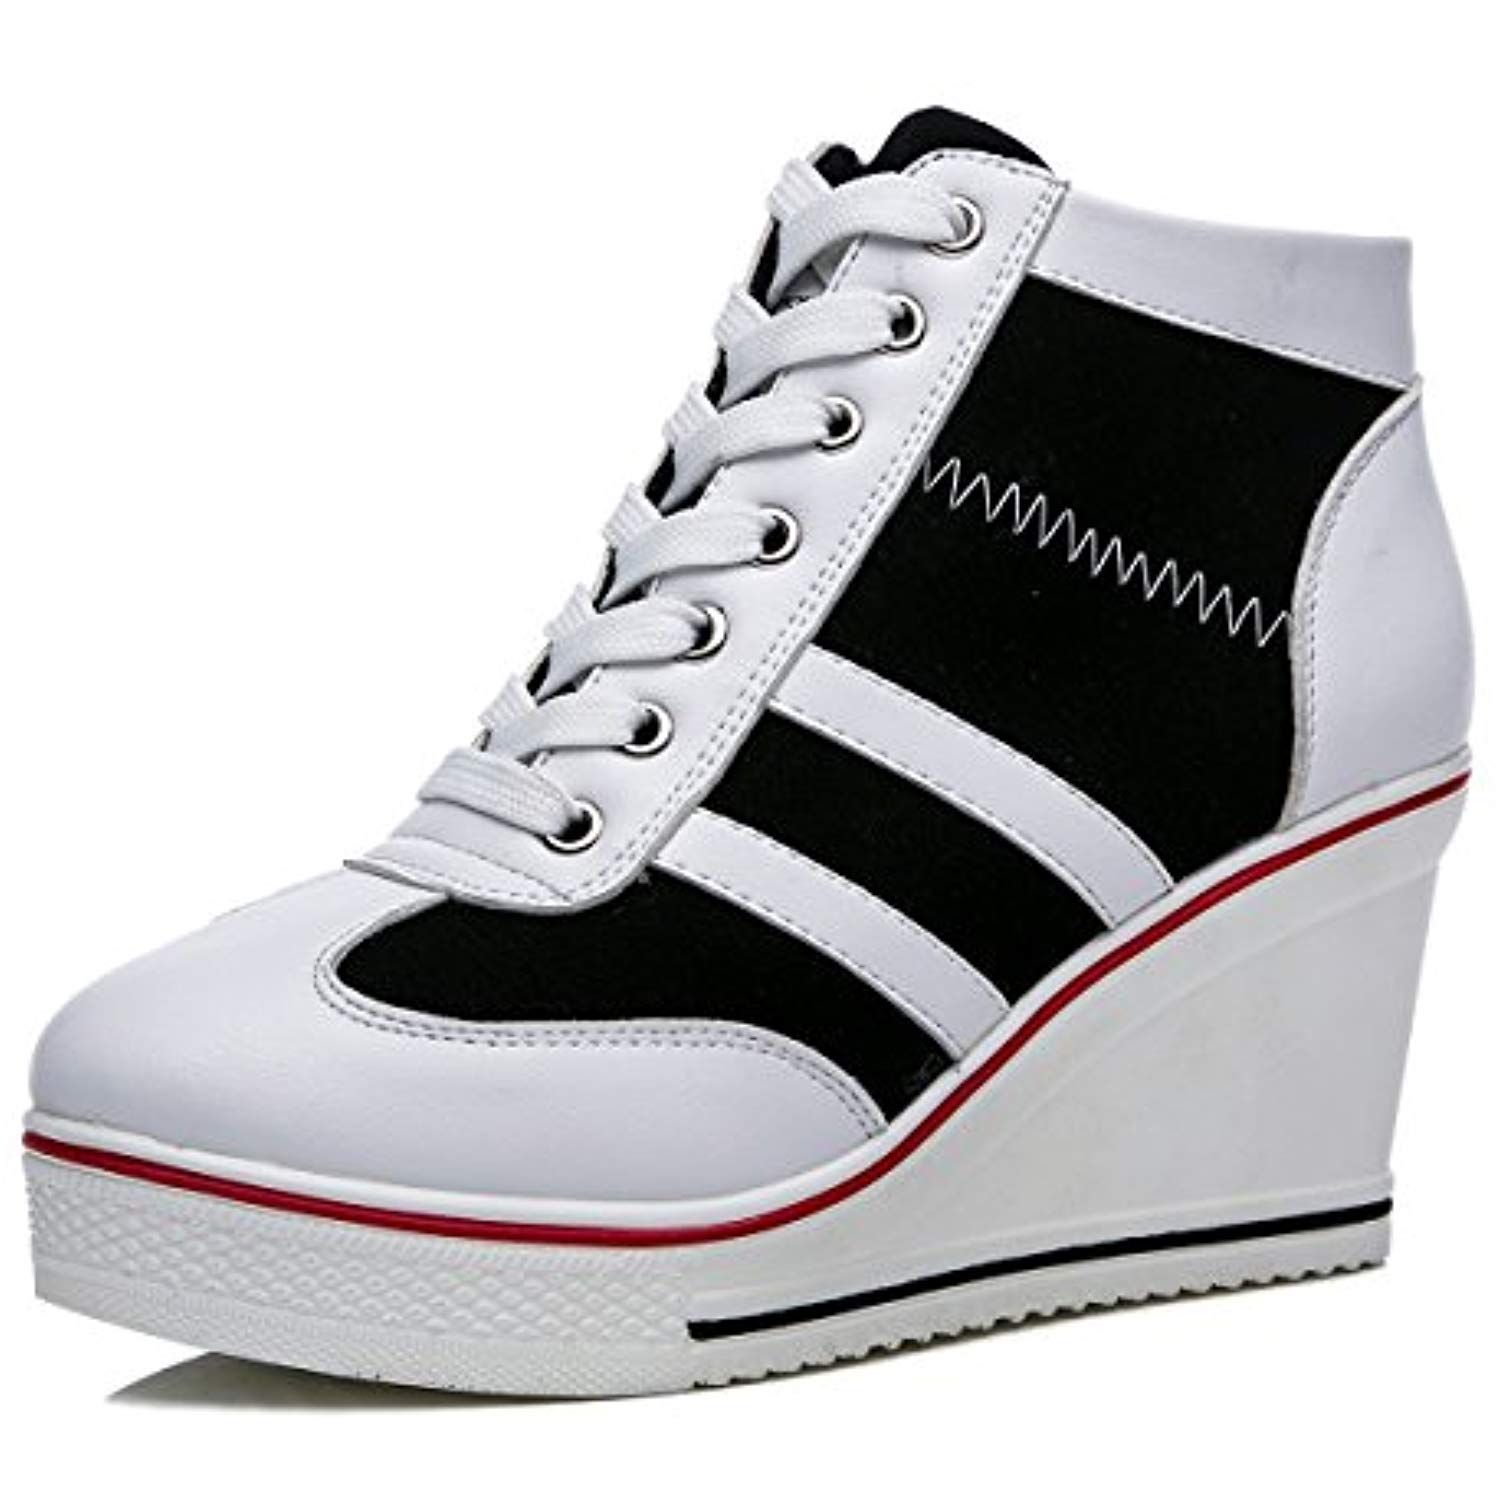 e9e28979e41bf Womens Casual Platform Plus Size High Top Wedge Heel Zipper Canvas ...